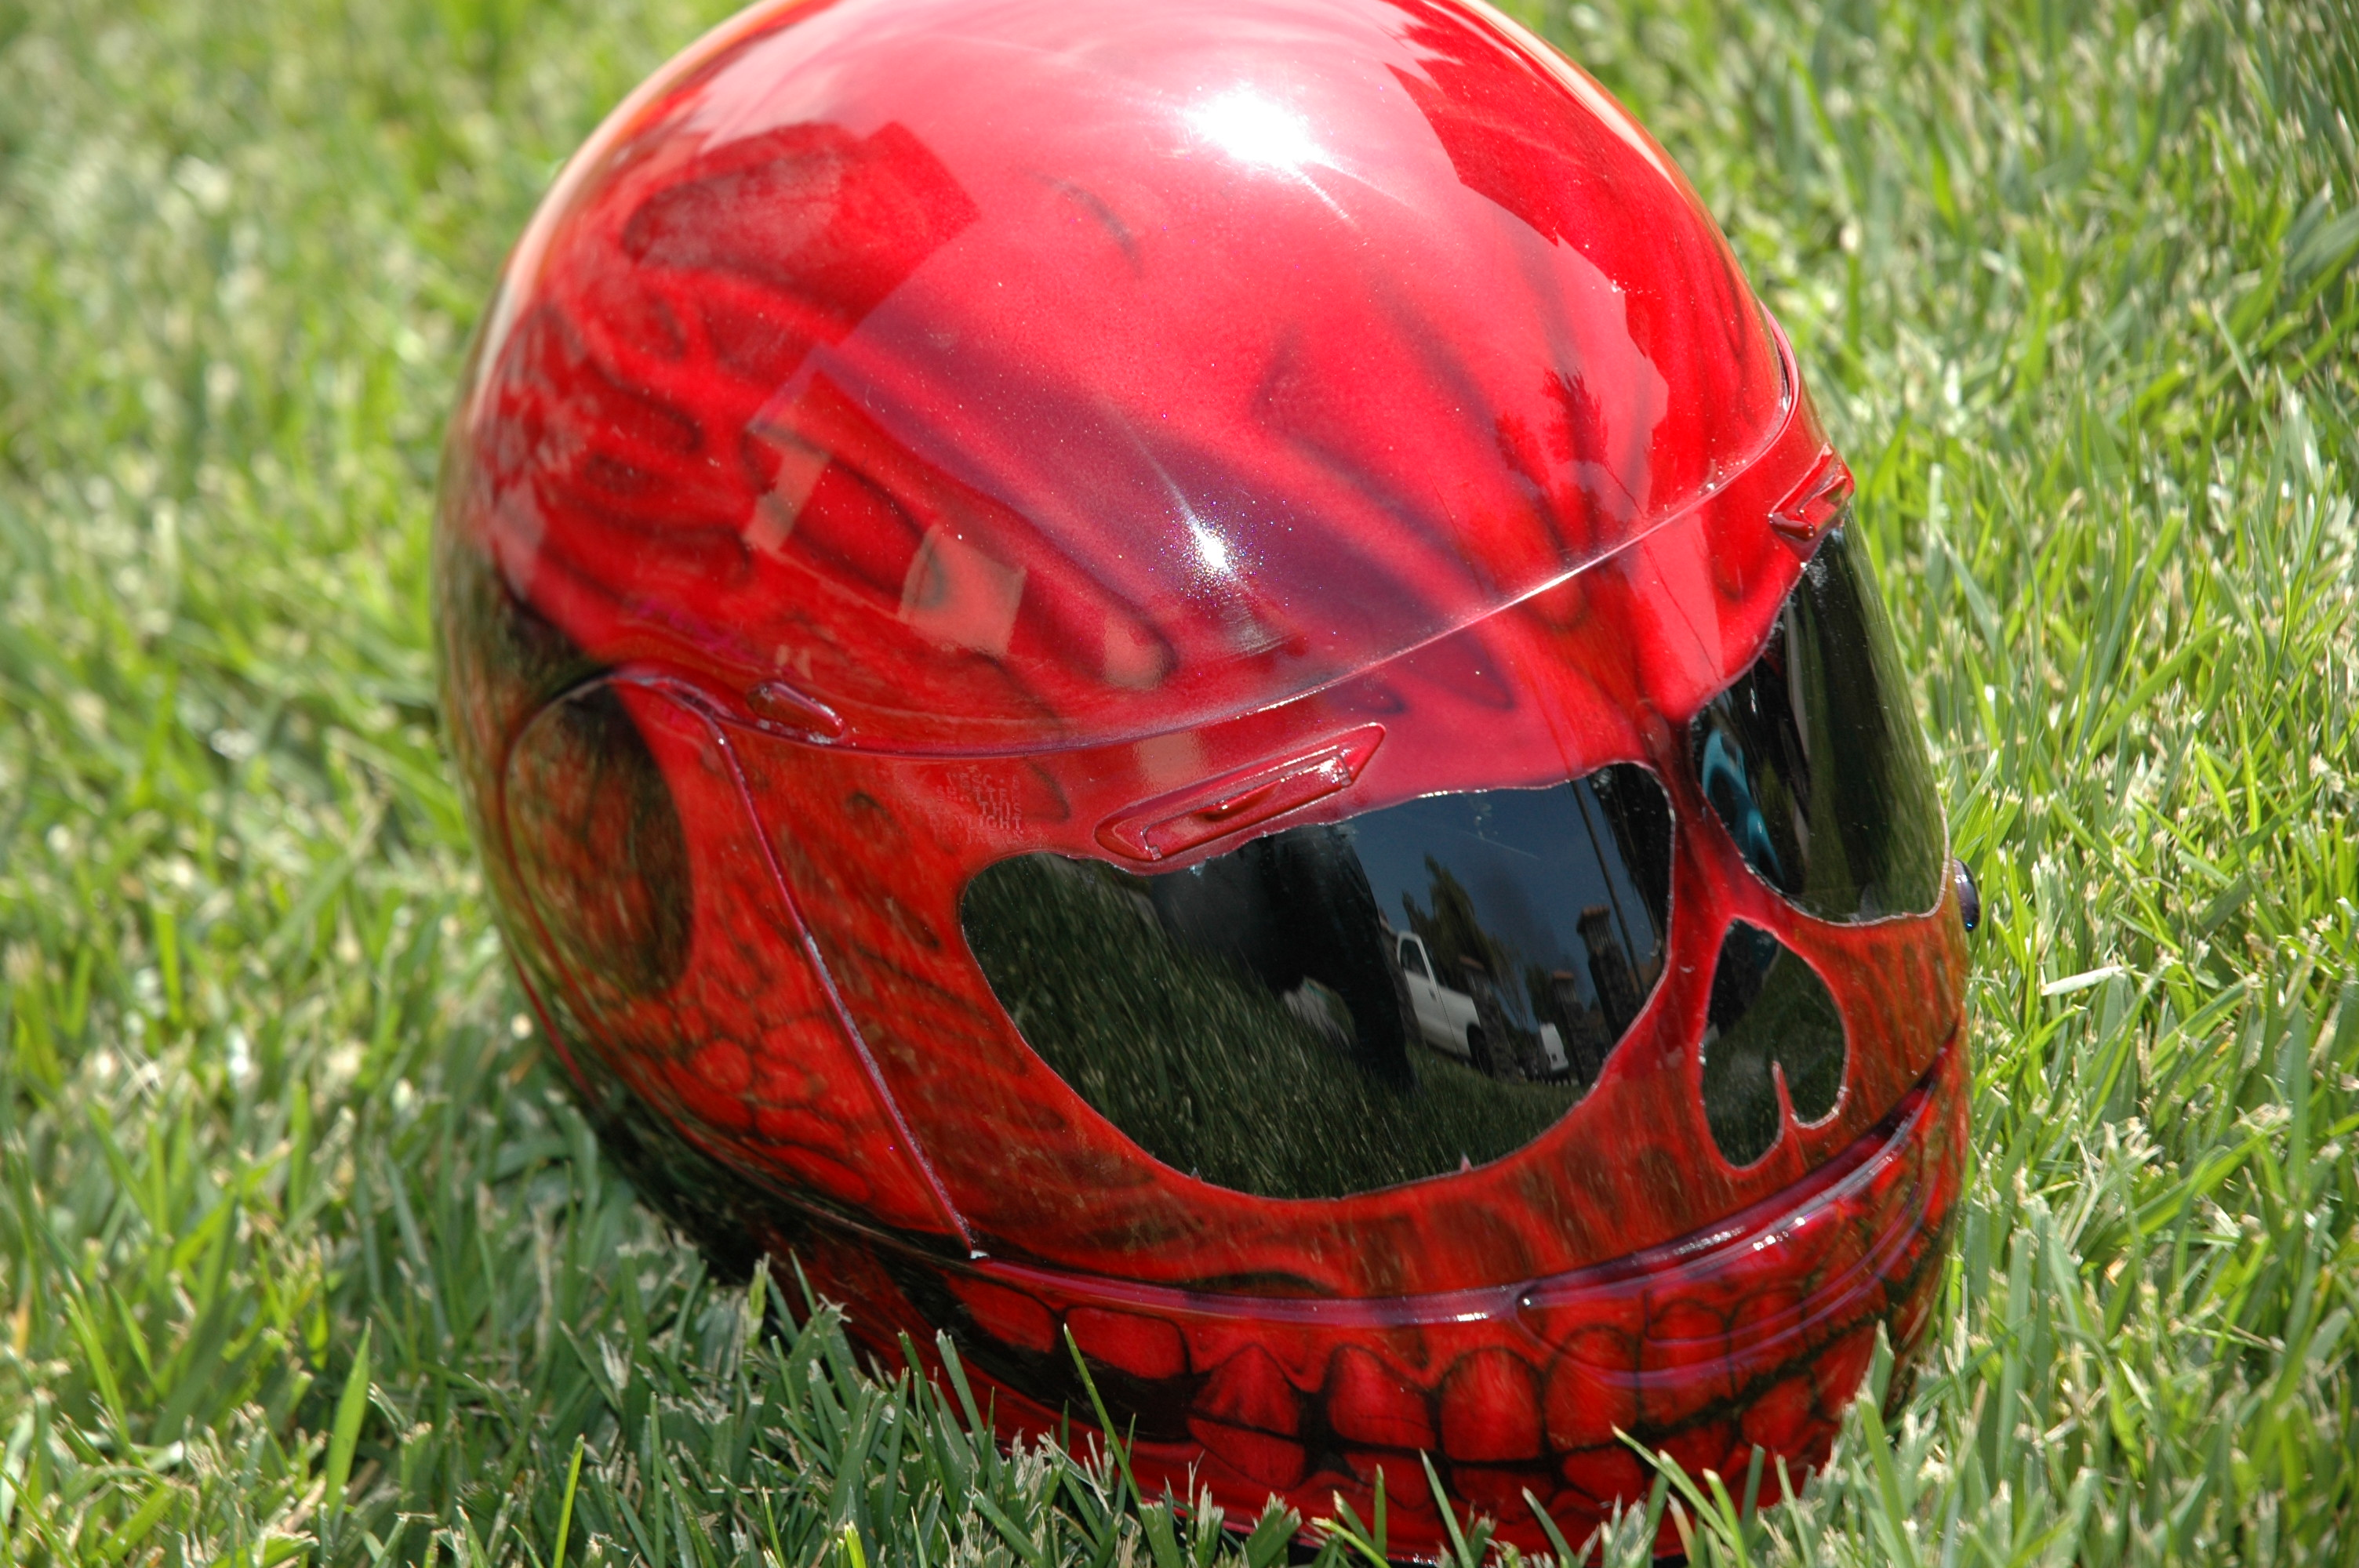 Custom airbrush paint motorcycle helmets for sale by Bad ...